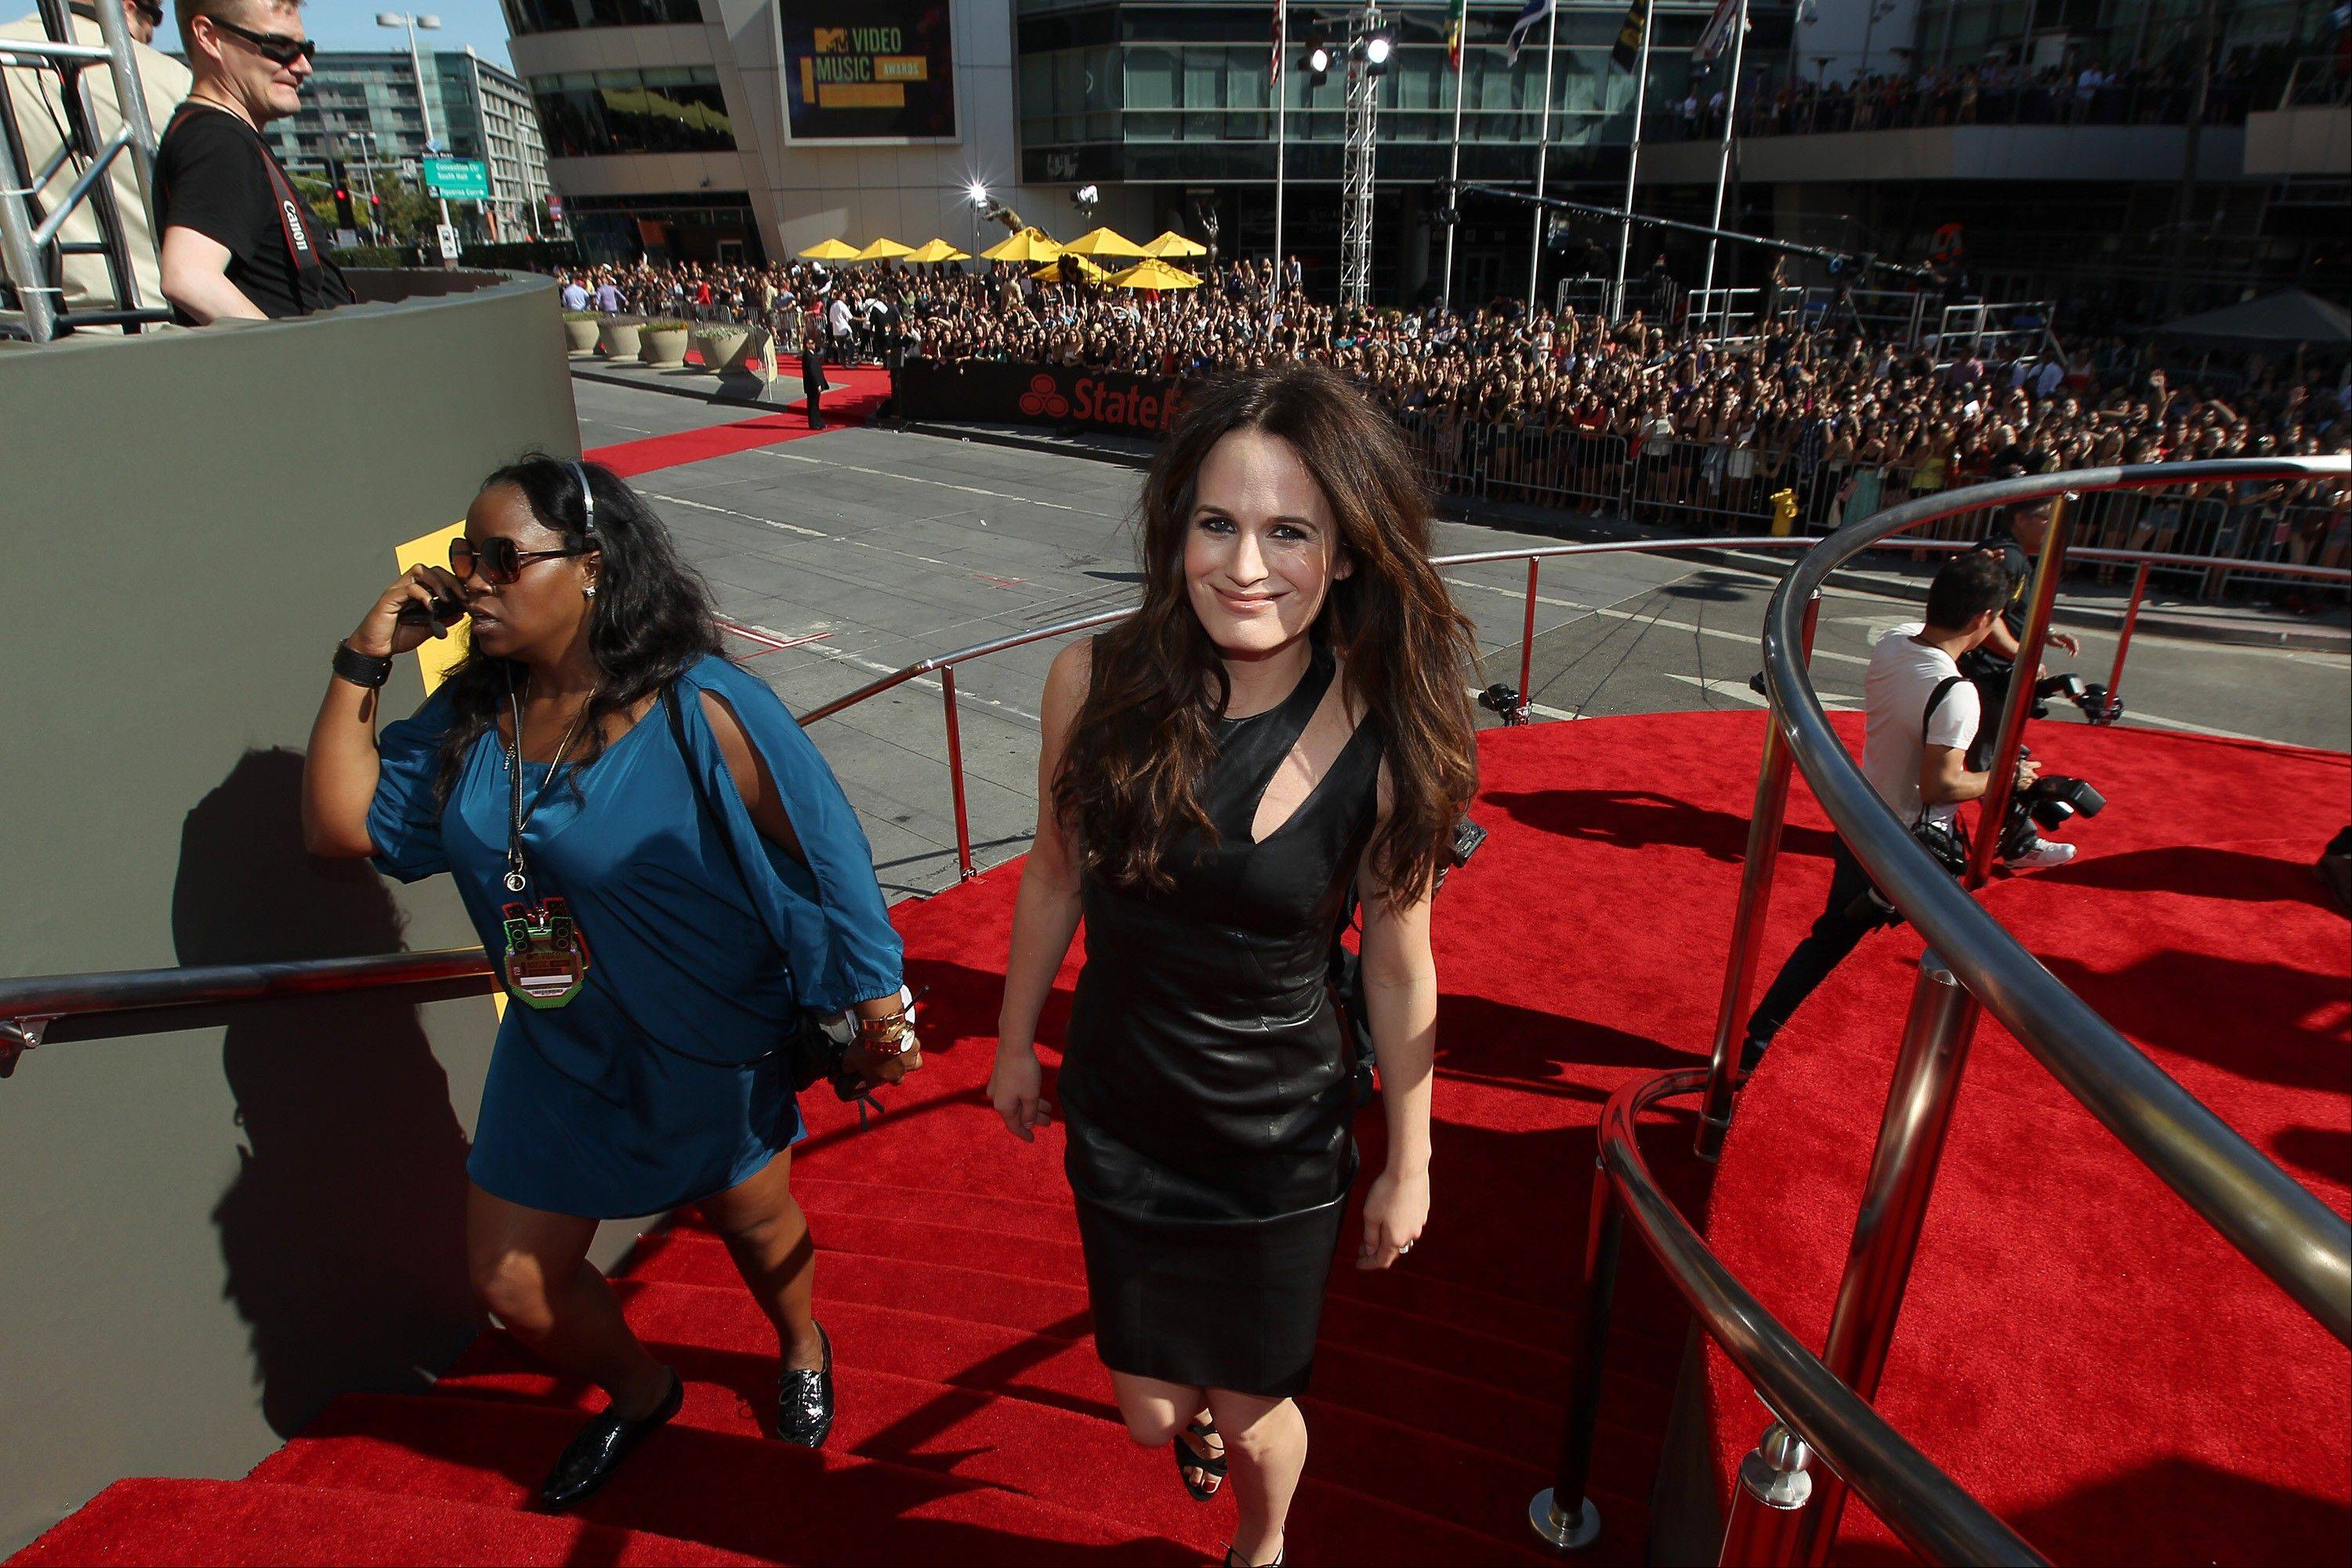 Actress Elizabeth Reaser arrives at the MTV Video Music Awards on Thursday, Sept. 6, 2012, in Los Angeles.